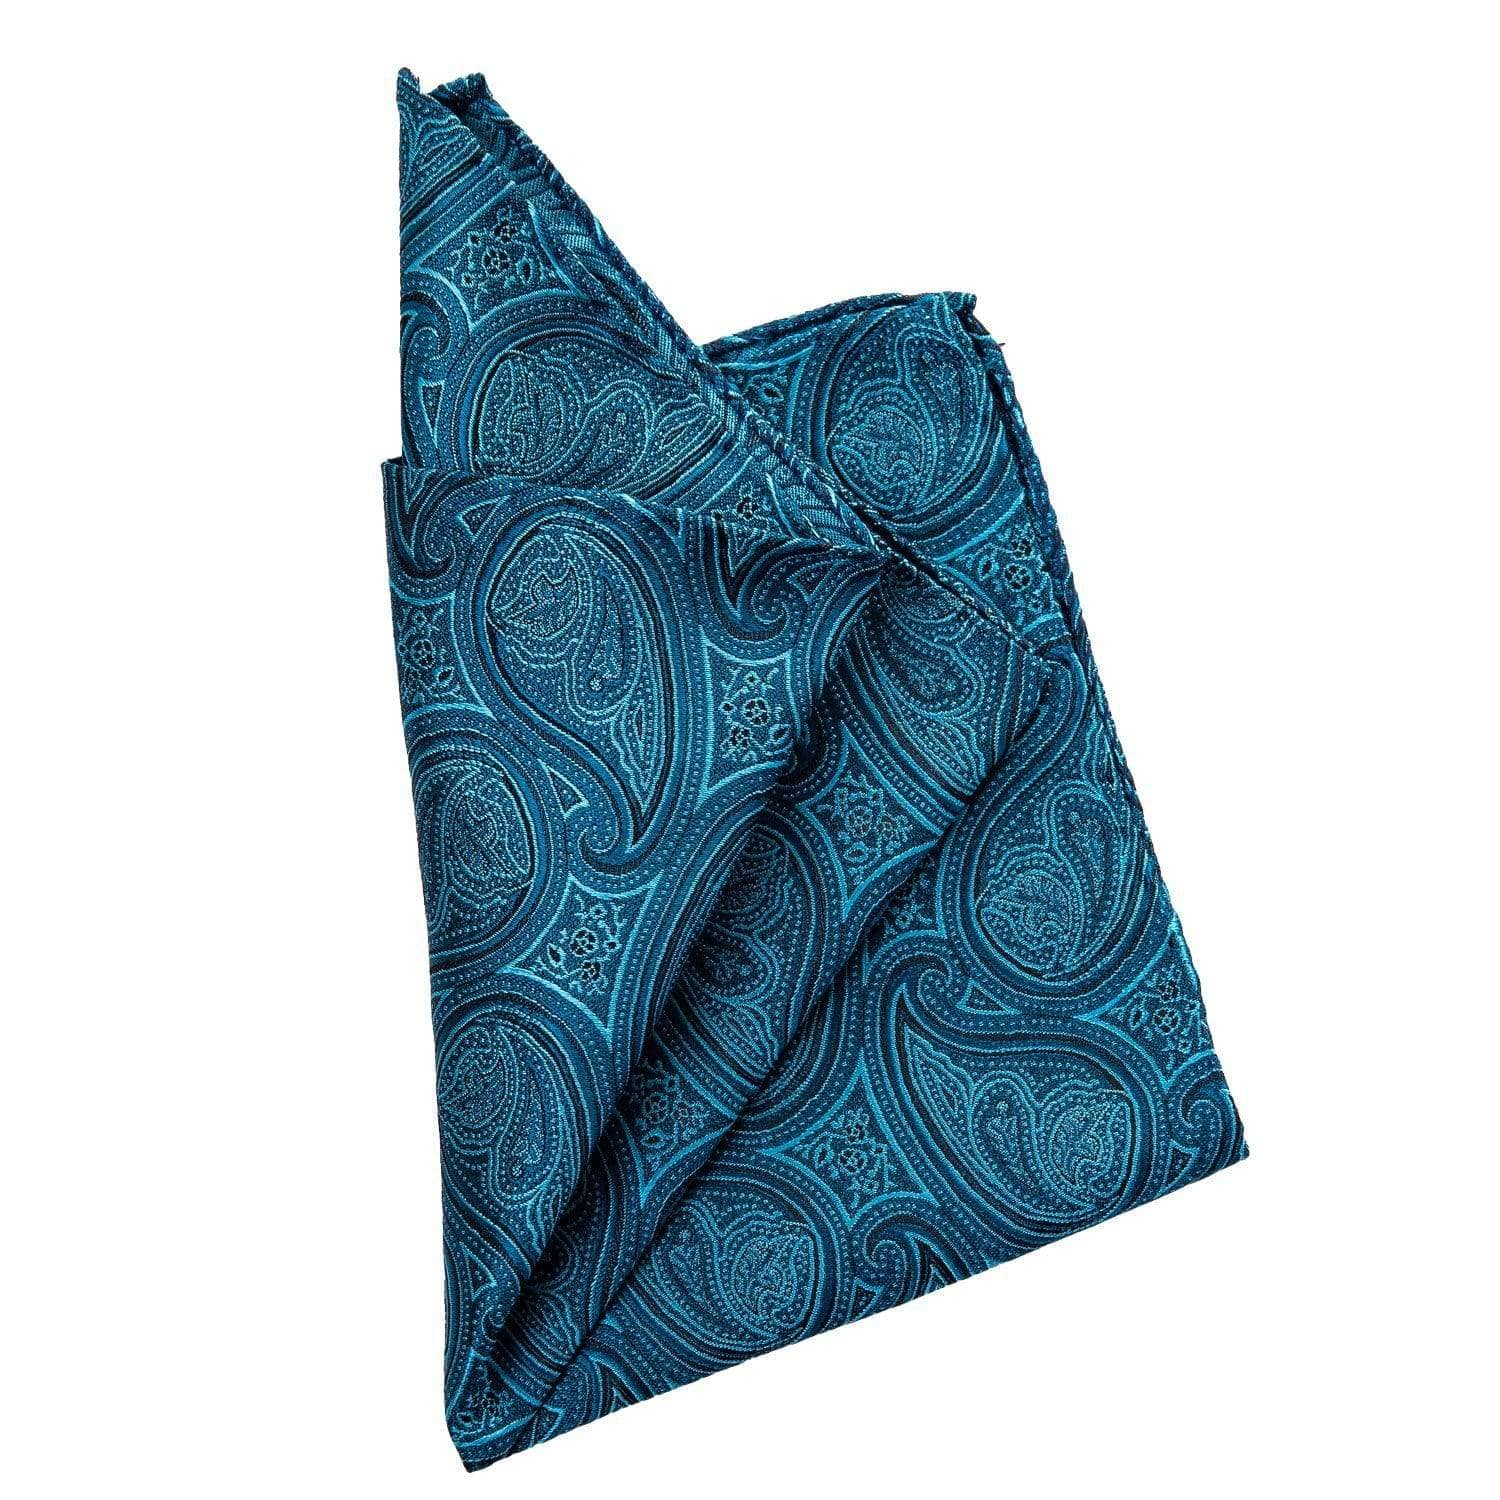 Turquoise Paisley Silk Pocket Square - Made Como Italy